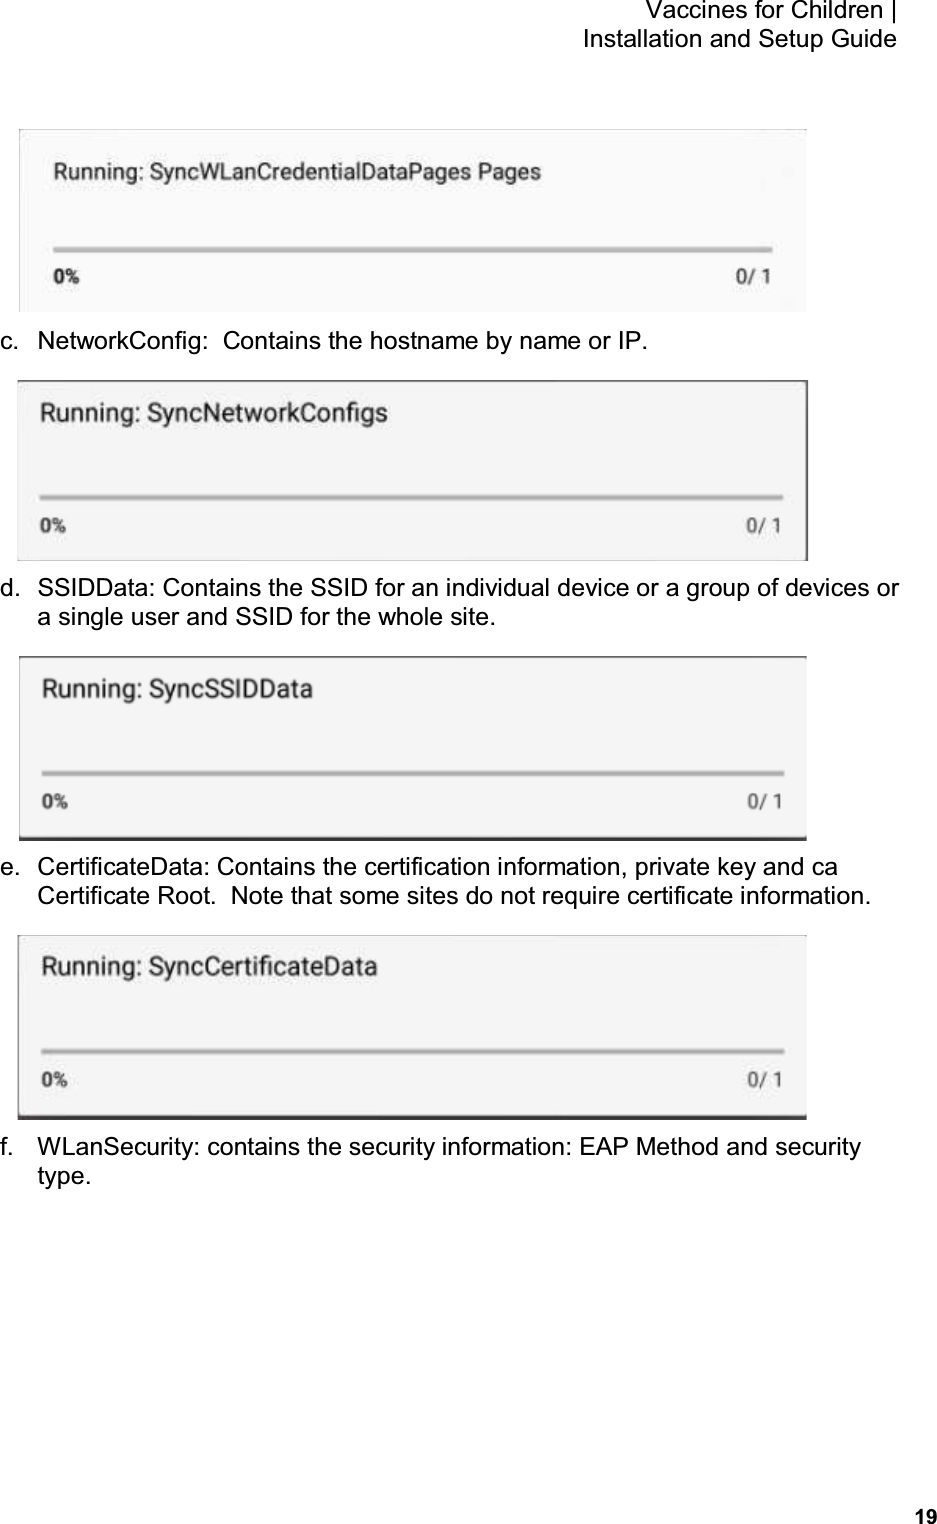 19 Vaccines for Children    Installation and Setup Guide  c.  NetworkConfig:  Contains the hostname by name or IP.  d.  SSIDData: Contains the SSID for an individual device or a group of devices or a single user and SSID for the whole site.  e.  CertificateData: Contains the certification information, private key and ca Certificate Root.  Note that some sites do not require certificate information.  f.  WLanSecurity: contains the security information: EAP Method and security type.